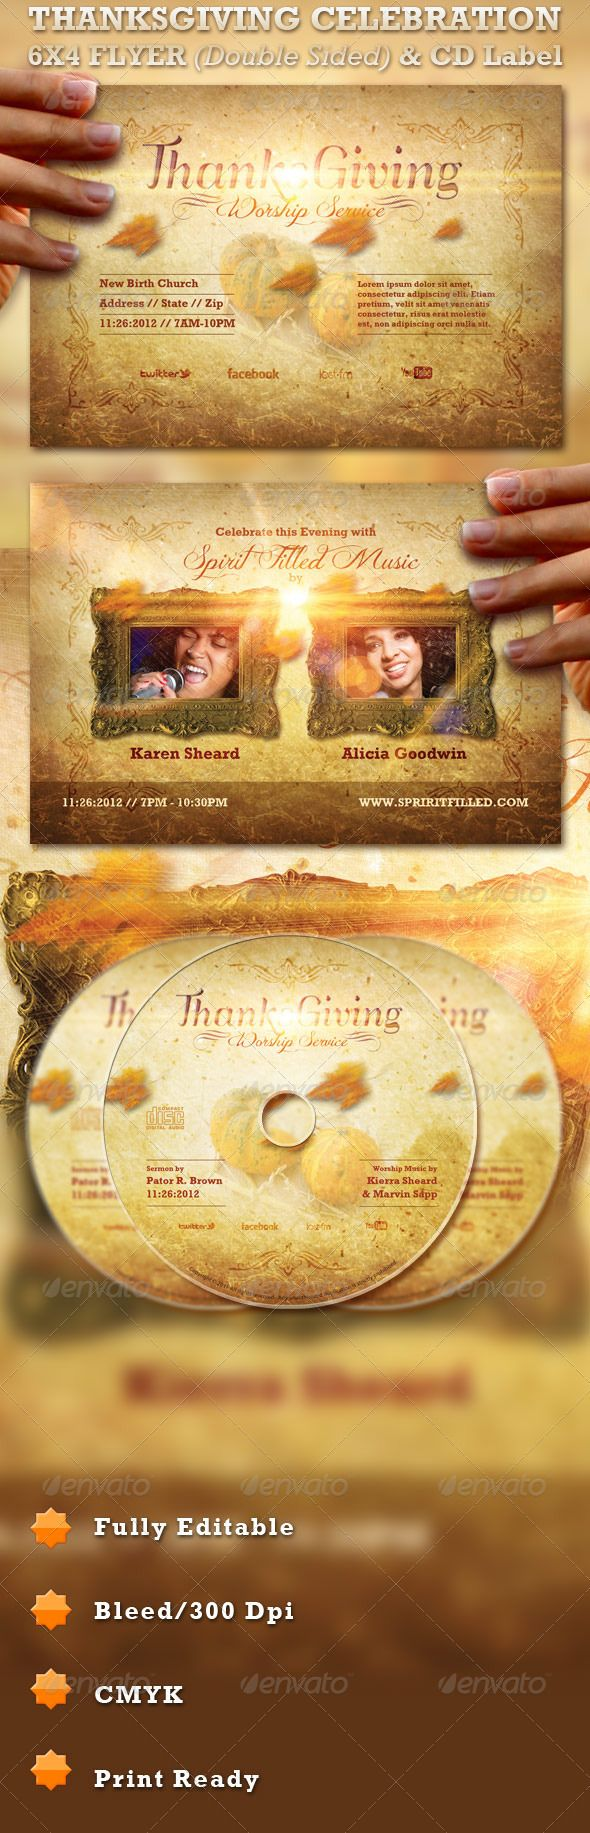 Thanksgiving Celebration Flyer and CD Label- Price: $6.00